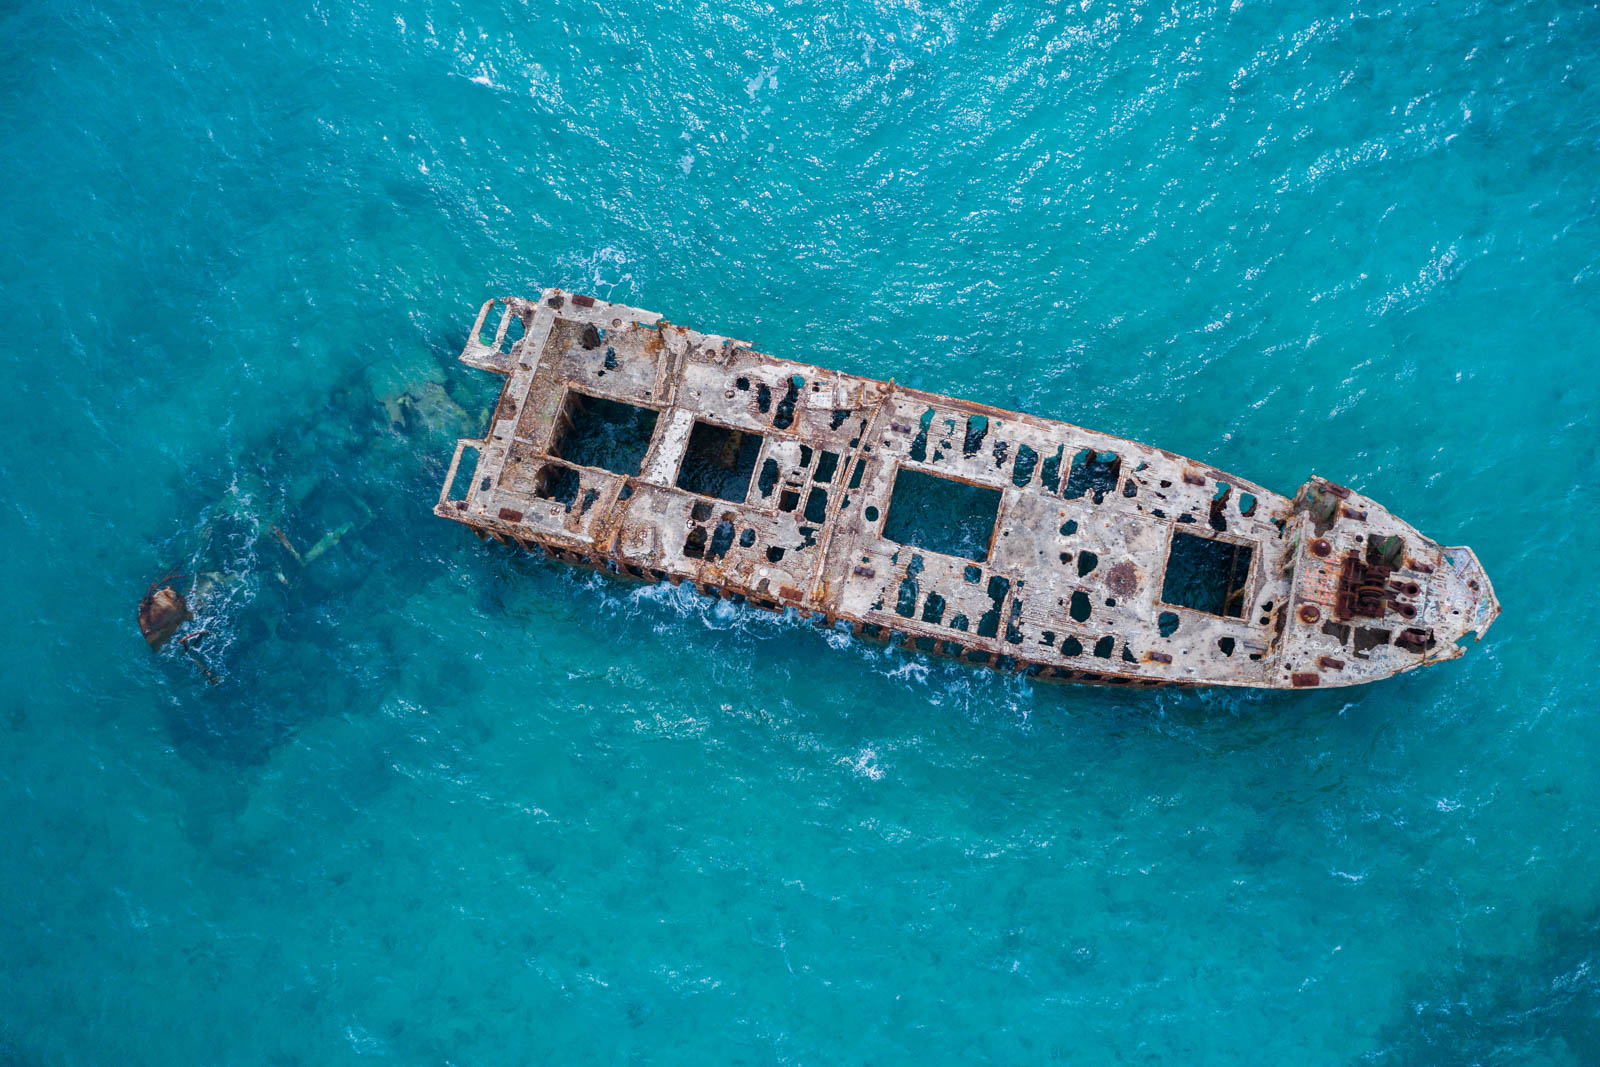 Sapona Shipwreck of the Bahamas in the Caribbean Sea. Any day cruise to Bahamas will show you beautiful blue waters and secluded beaches on Bahamas day trip from Florida to Bahamas.